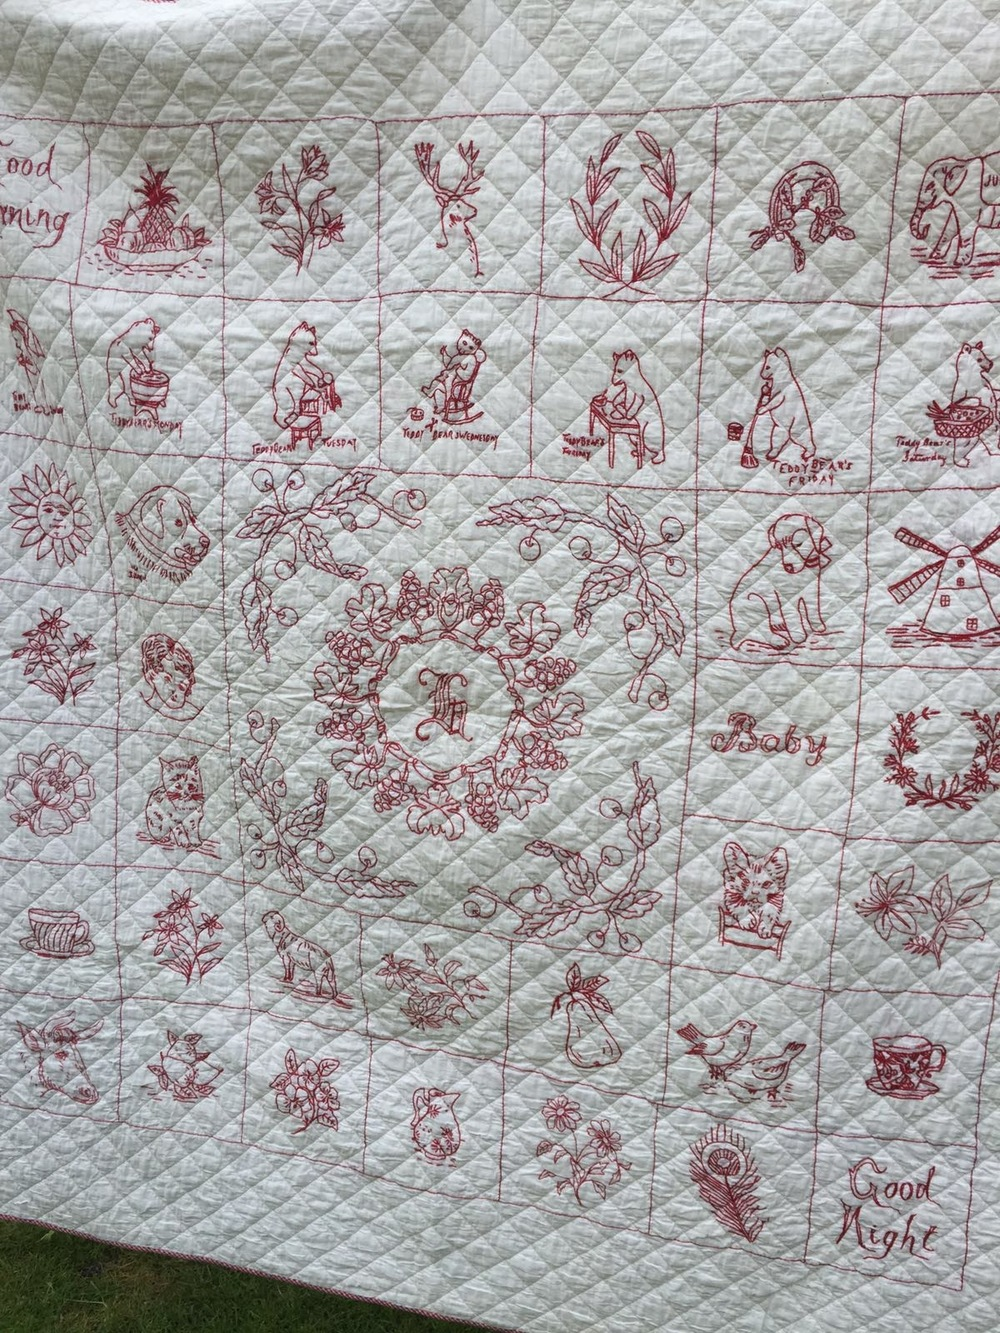 "Each month you will receive a 10"" block motif delivered digitally direct to your email in box. The motifs are inspired by this American vintage redwork quilt but all will be British themed."